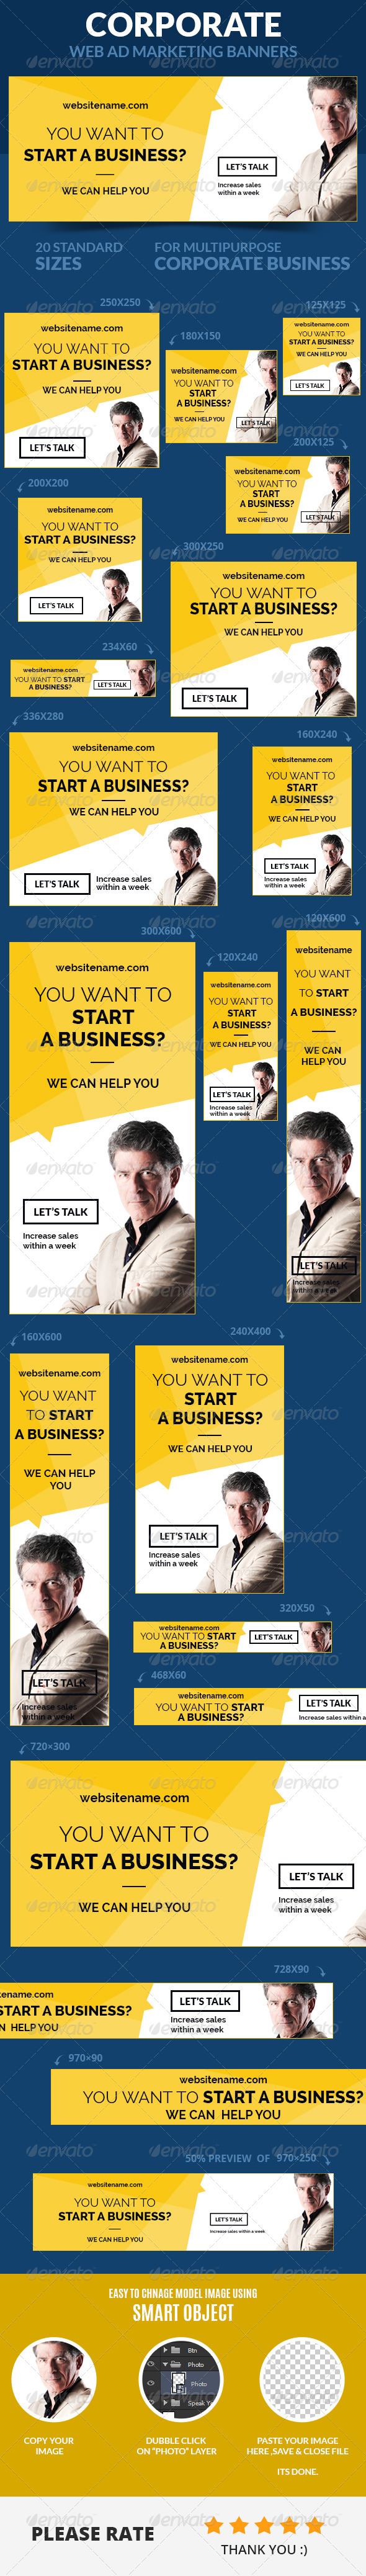 GraphicRiver Corporate Web Ad Marketing Banners 7883083